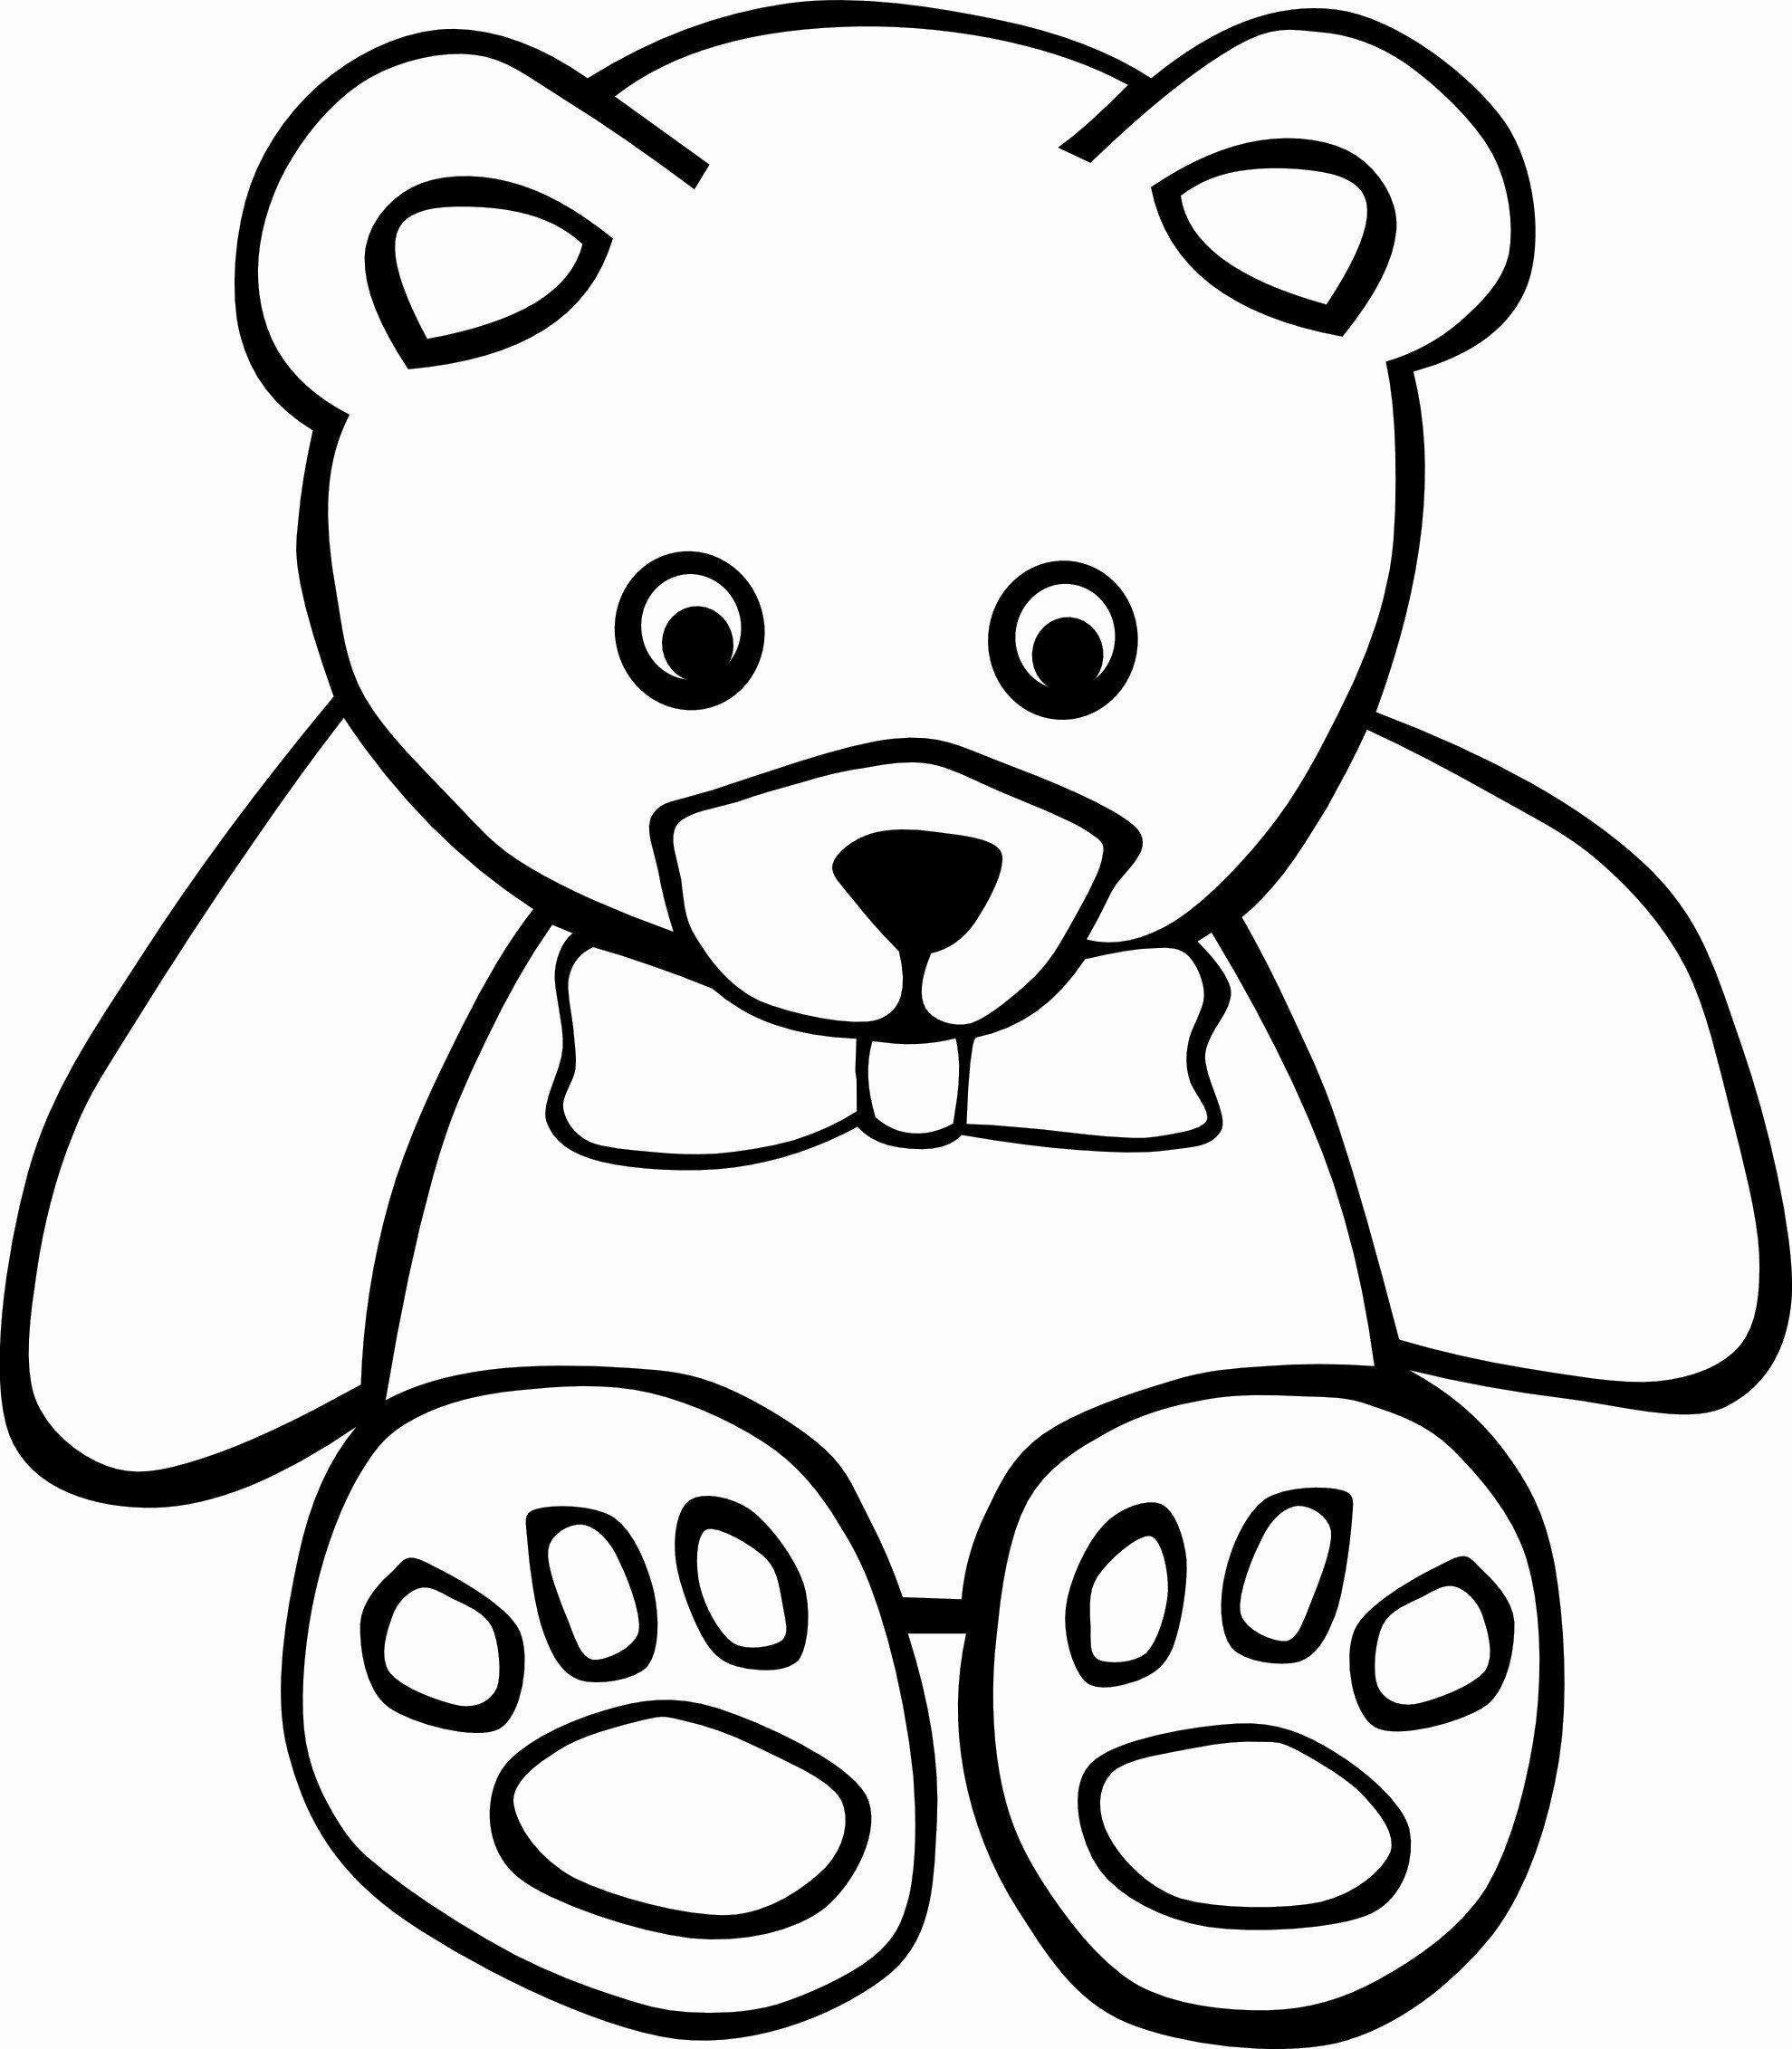 Teddy Bear Coloring Pages Best Of Teddy Bear Coloring